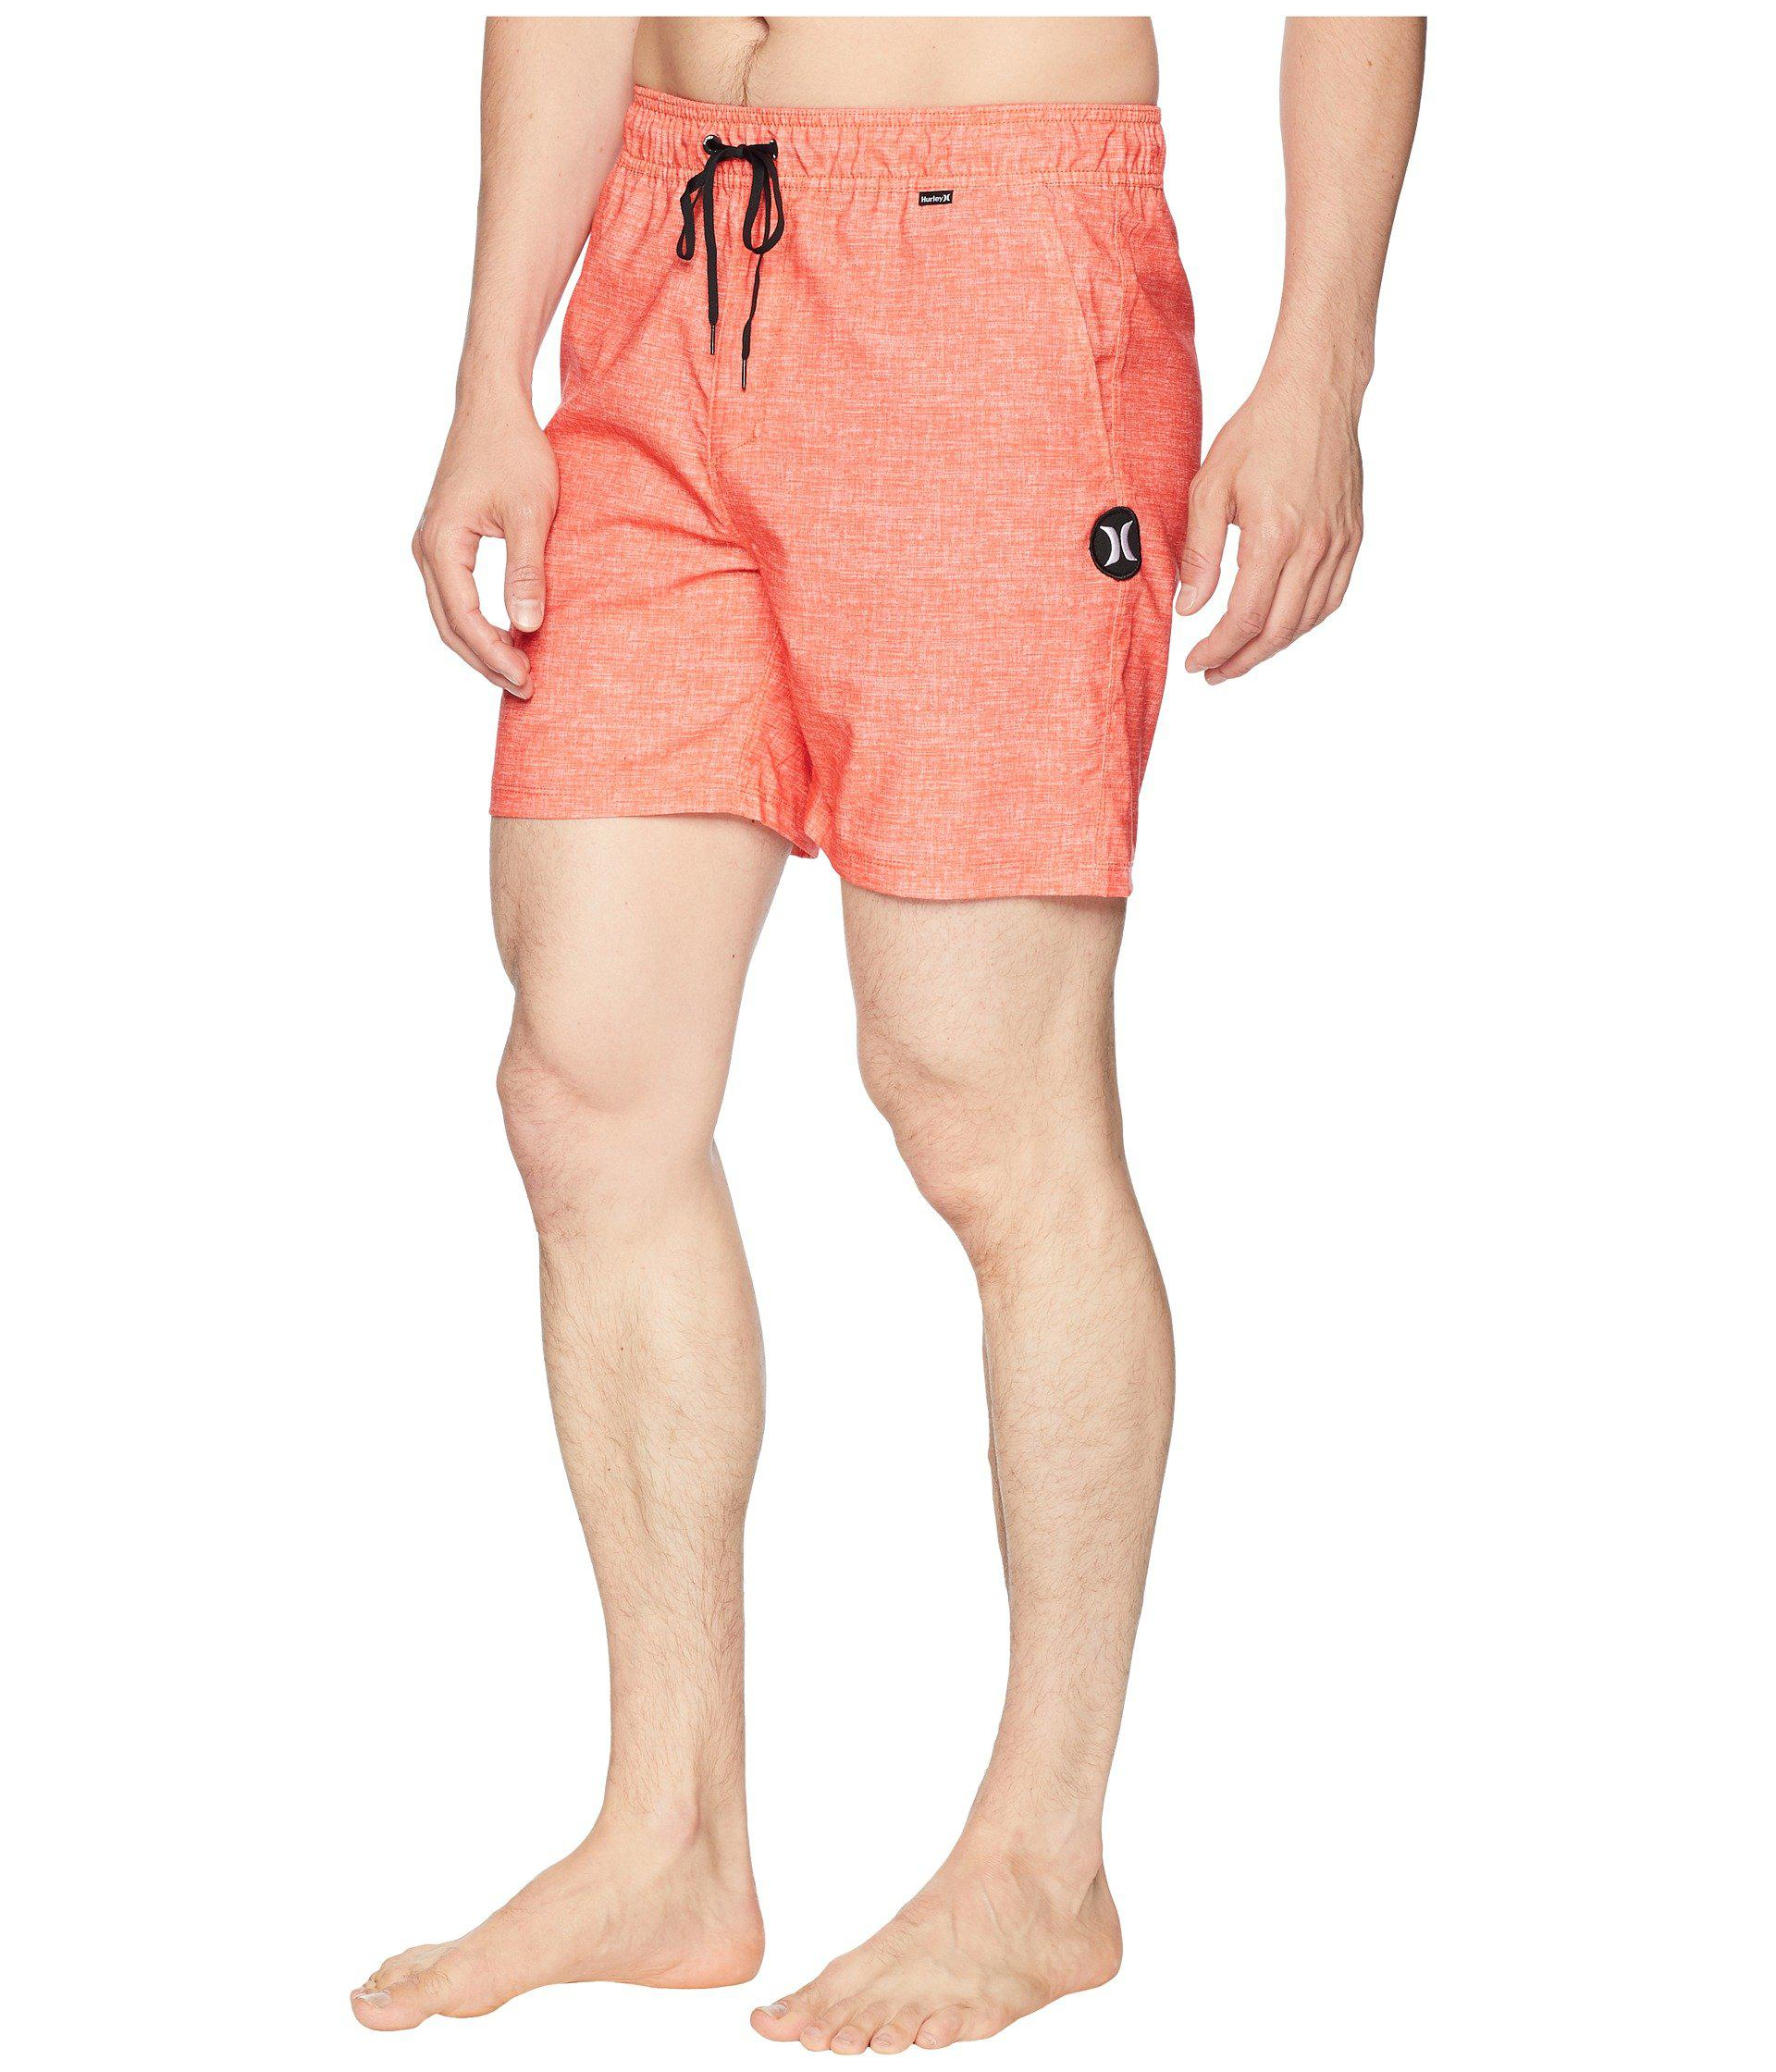 7938ab4525eb1 Hurley Heather Volley Shorts 17 (black) Men's Swimwear in Pink for ...